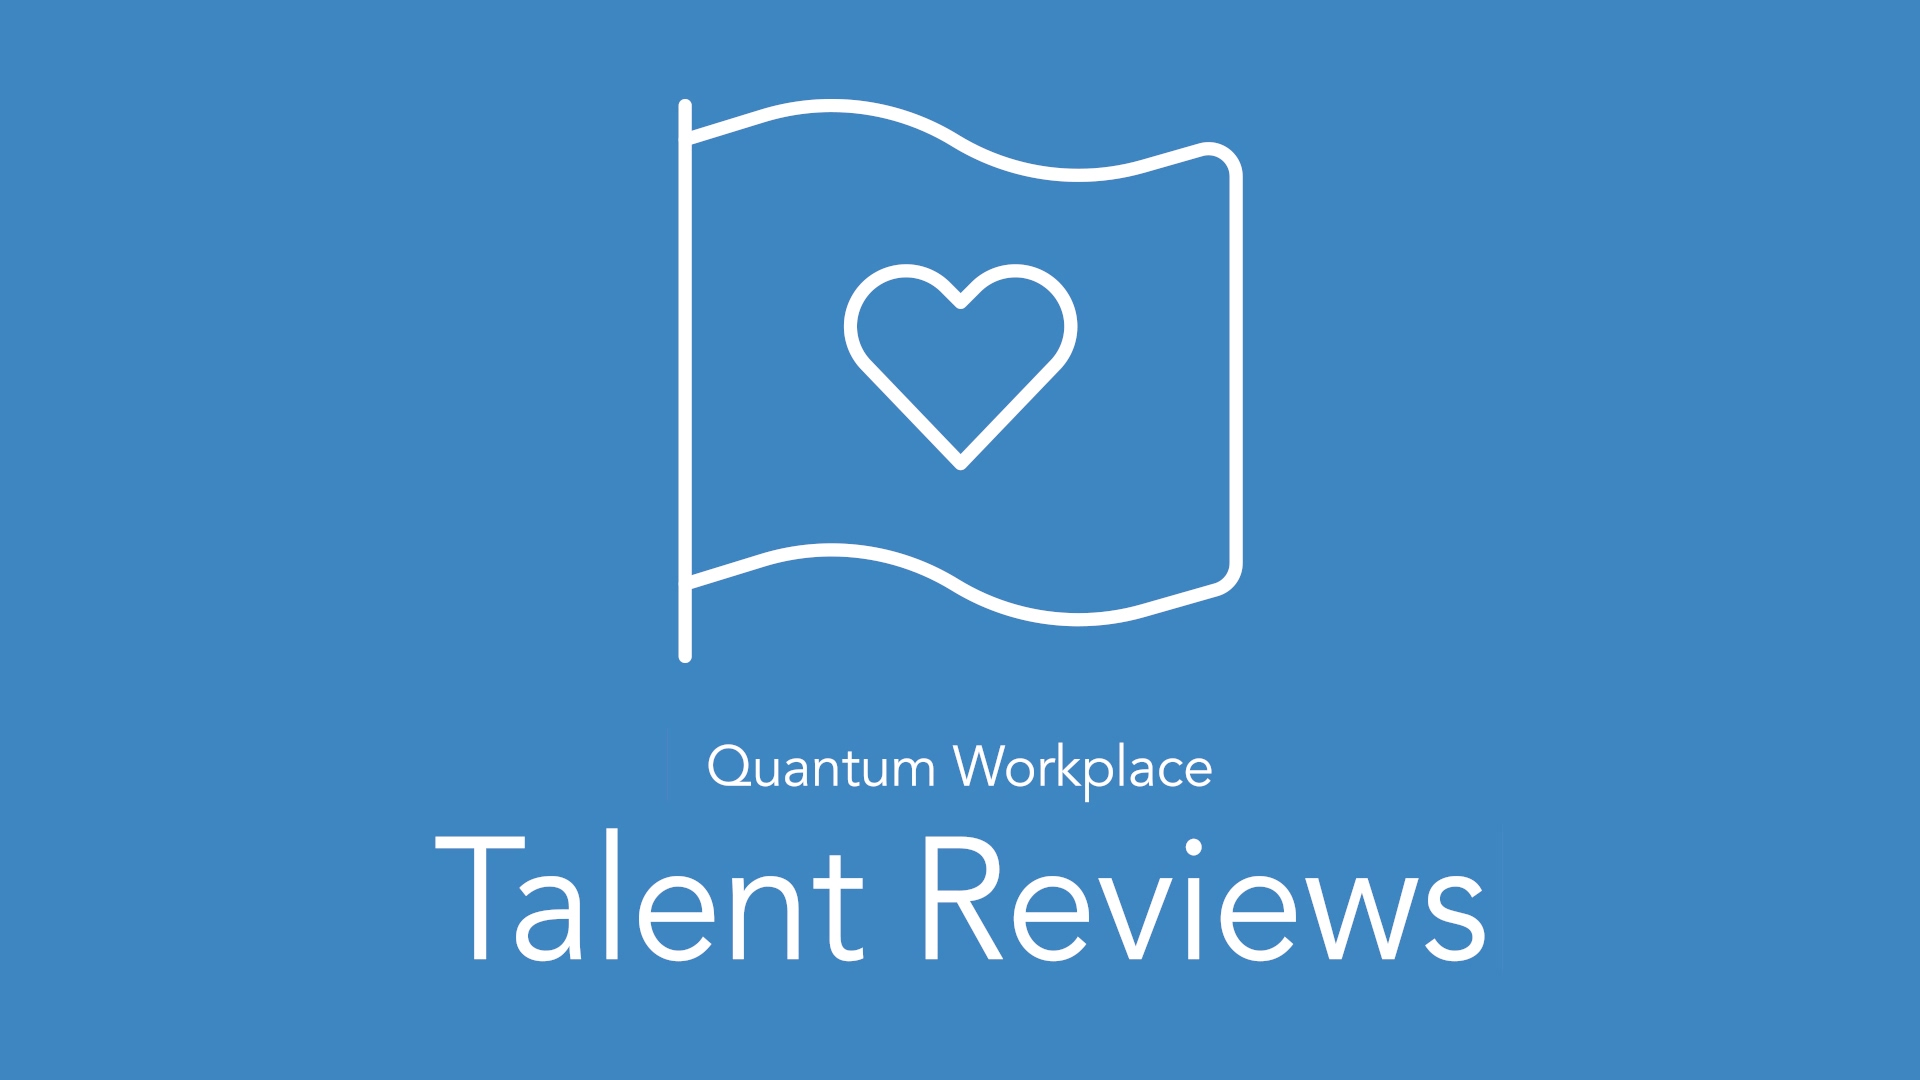 Product-Tool-Talent_Reviews